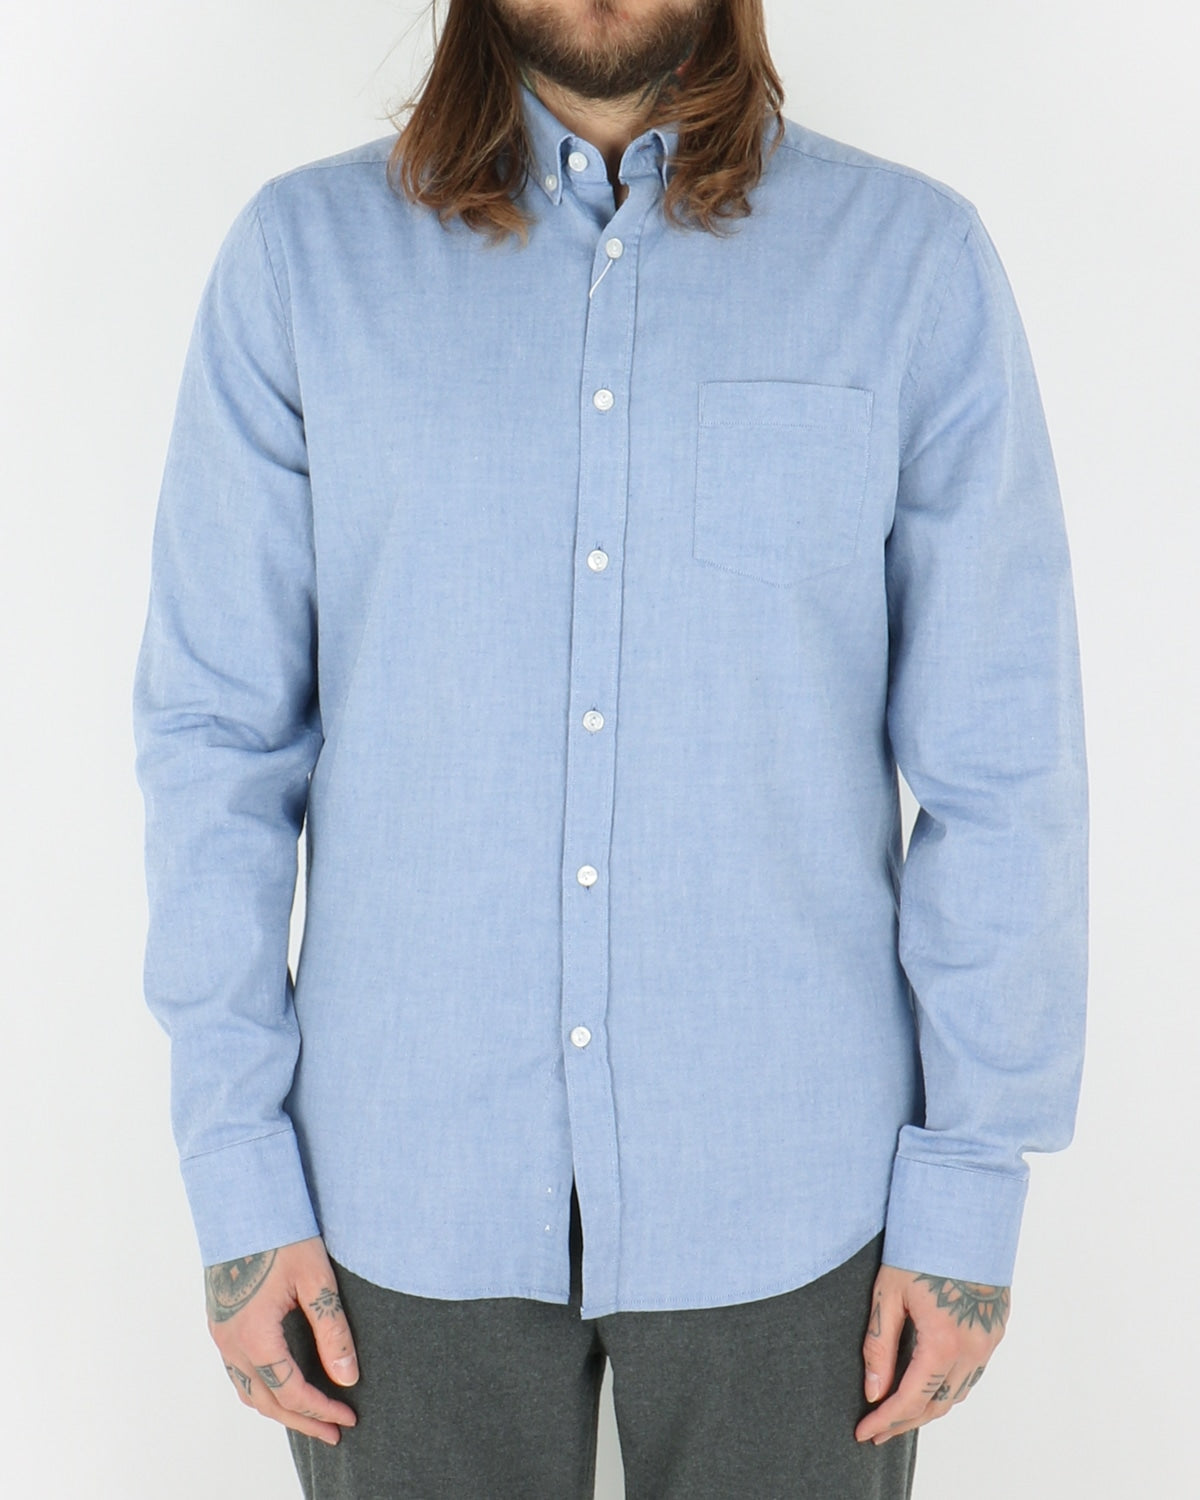 legends_ocean oxford shirt_light blue_view_1_2